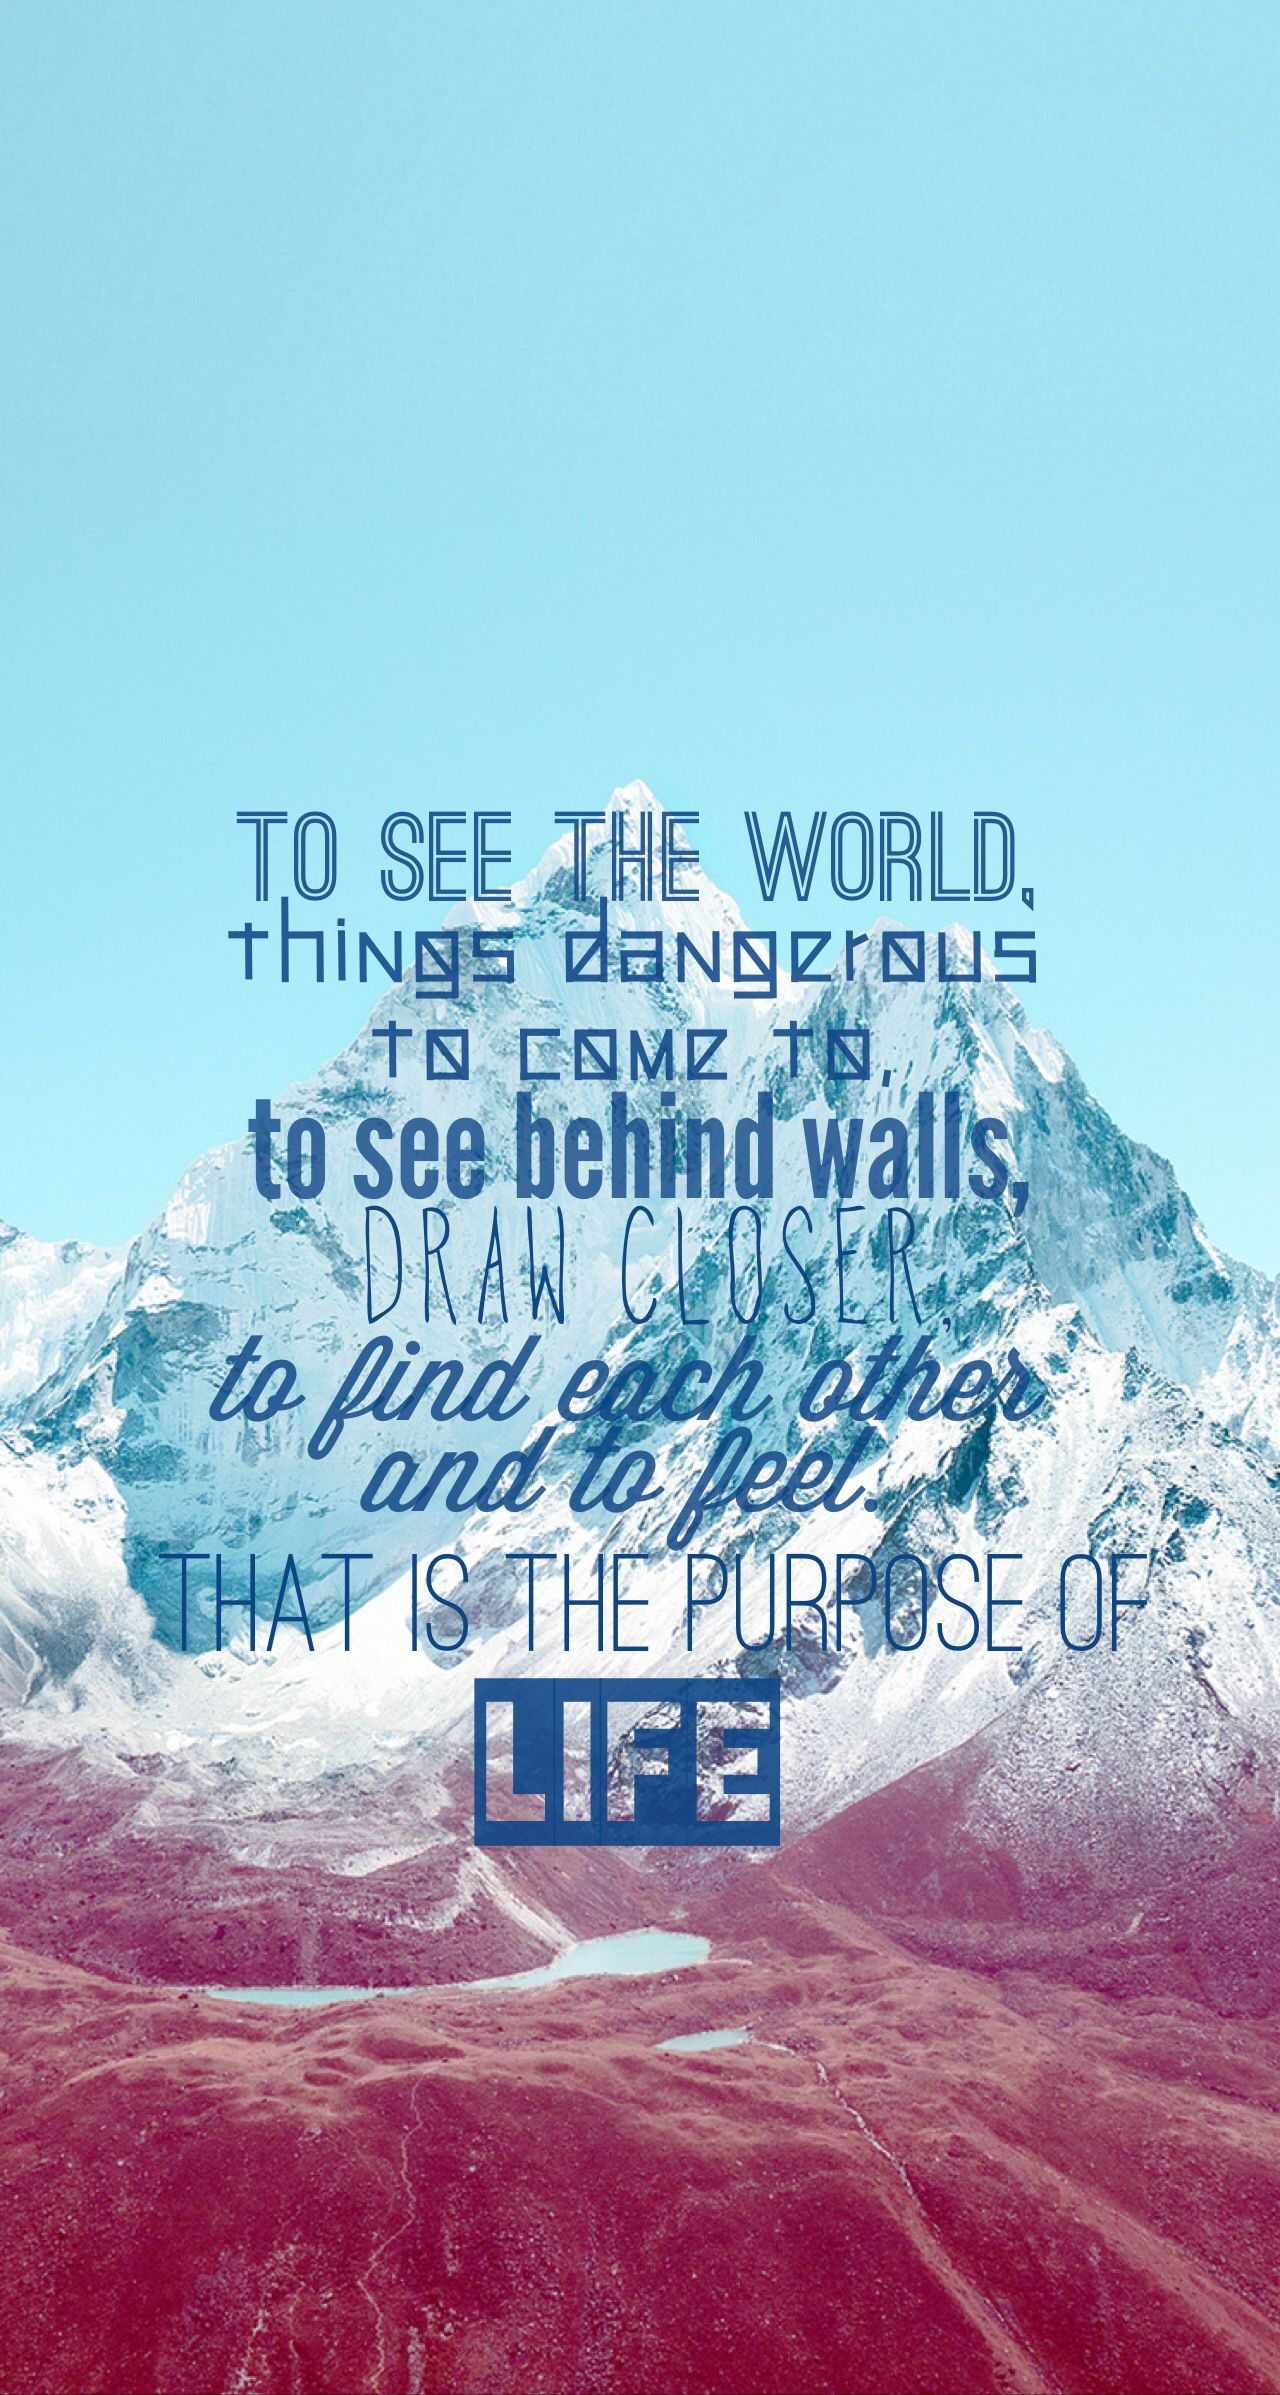 The Secret Life Of Walter Mitty Free Online